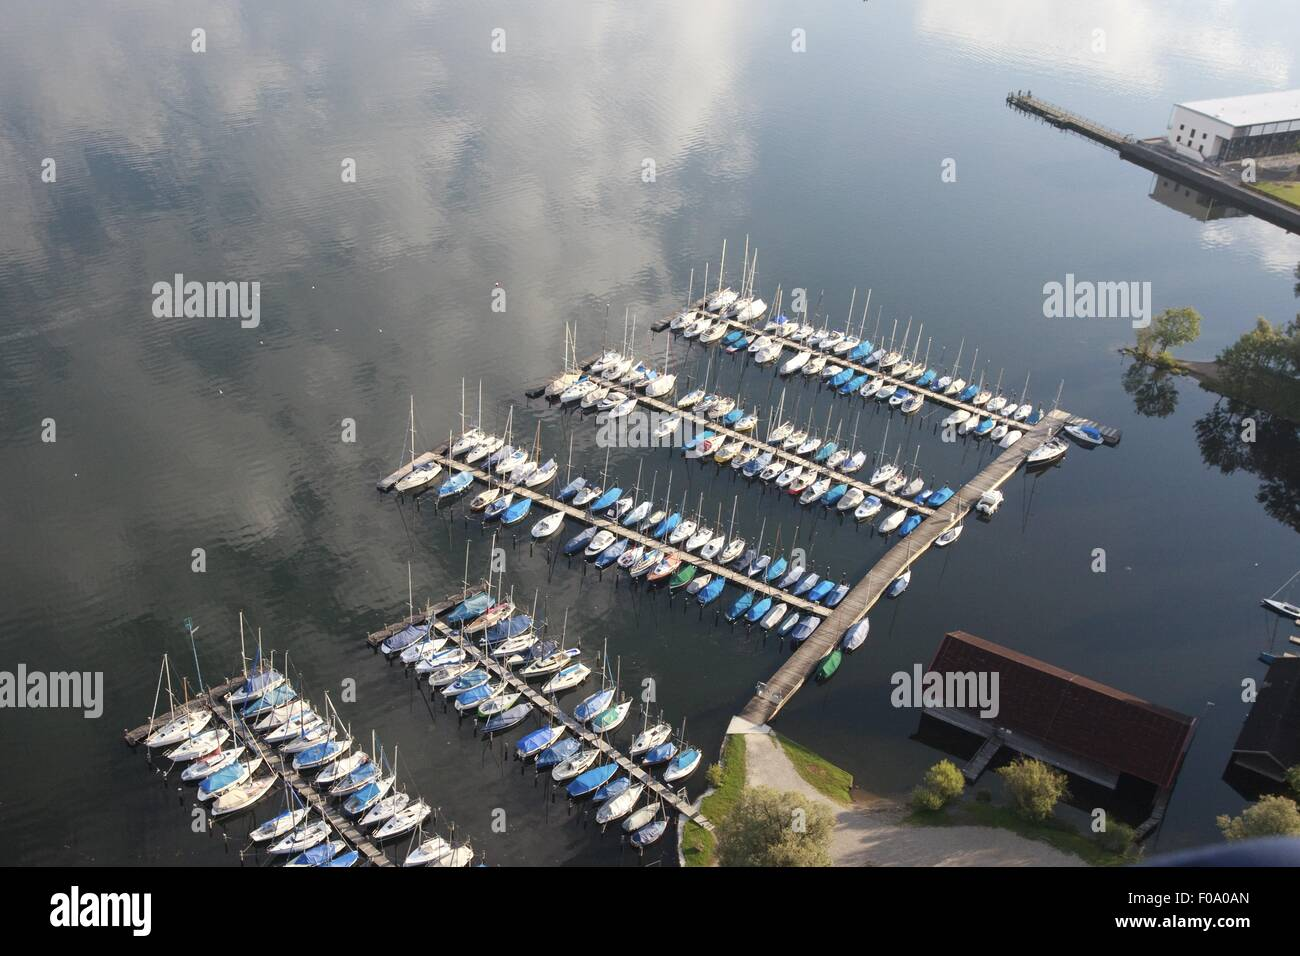 8327af92b2c3d Aerial view of boats parked in port at Prienavera